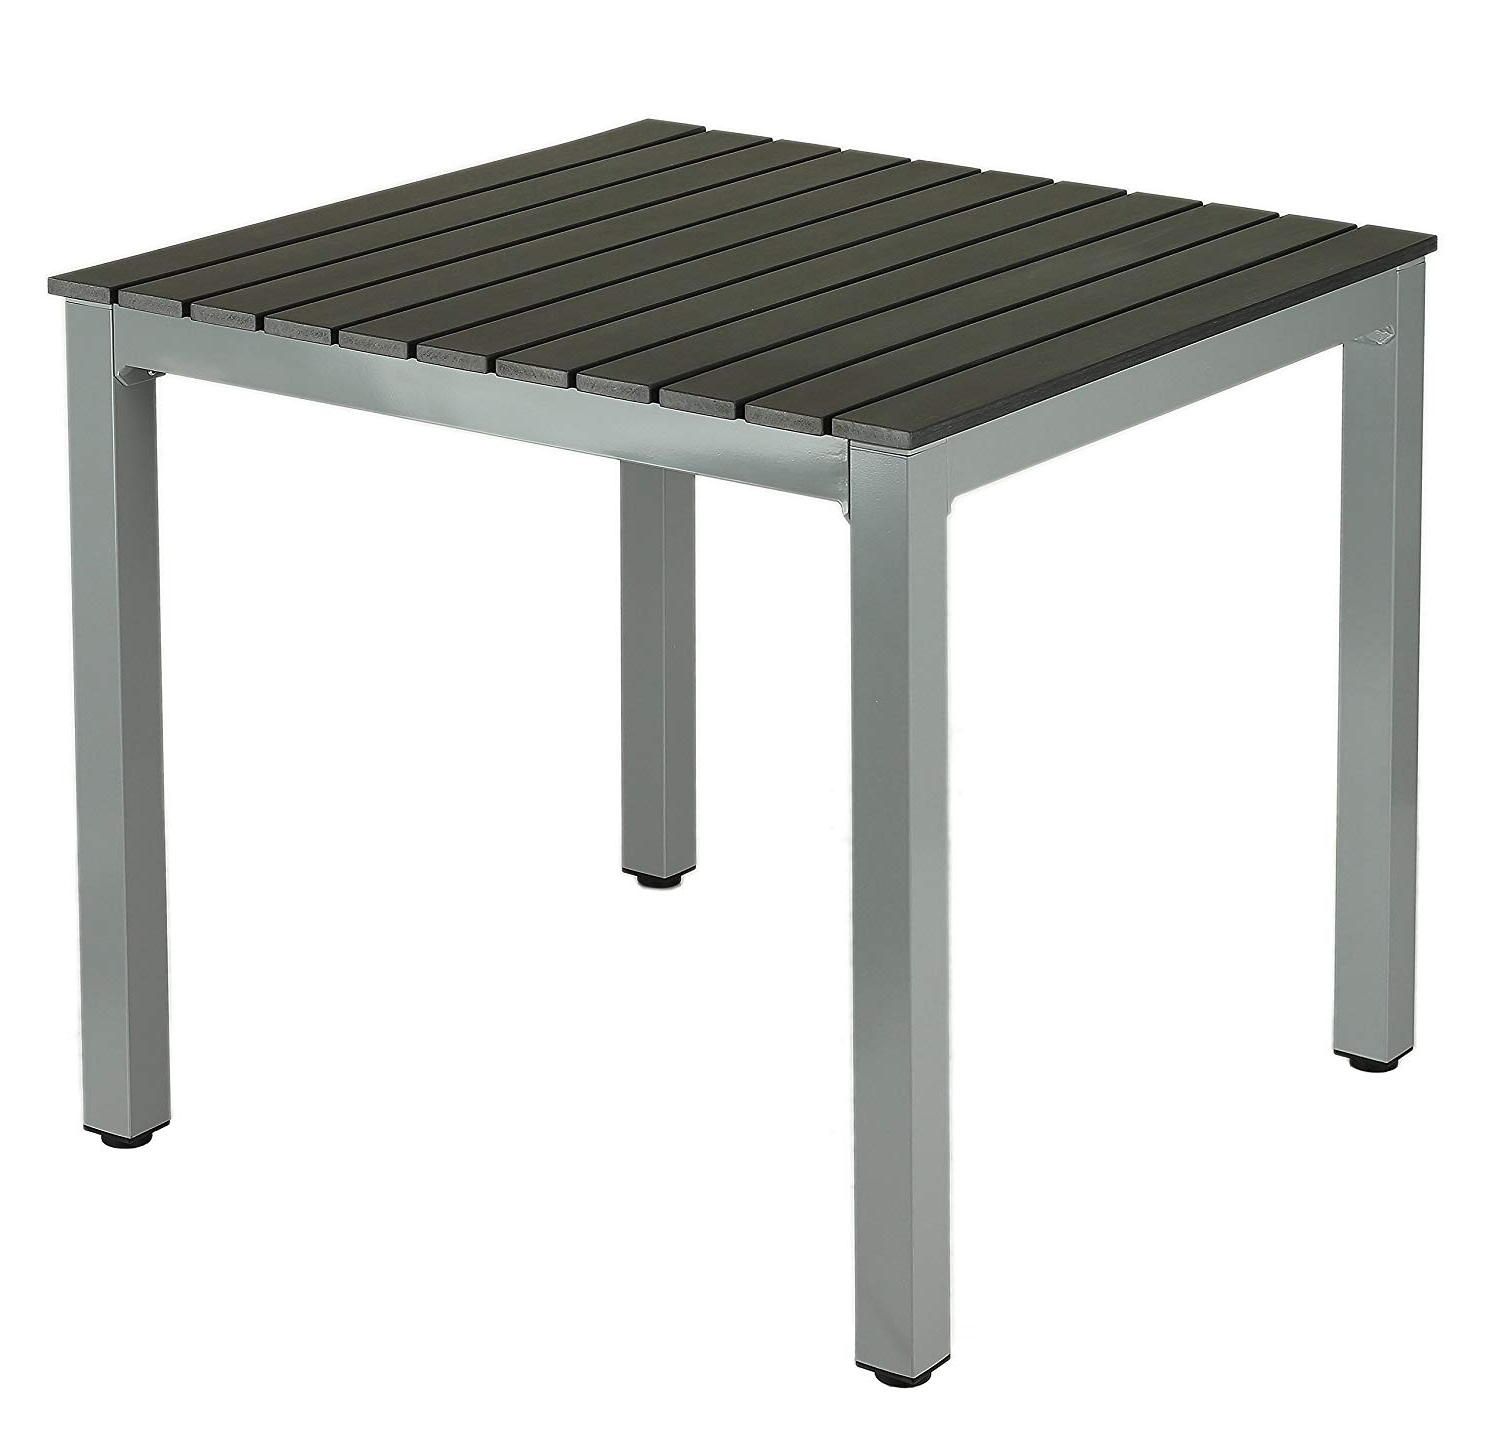 Most Popular Amazon : Jaxon Aluminum Outdoor Table In Poly Wood, Silver/slate With Jaxon 6 Piece Rectangle Dining Sets With Bench & Wood Chairs (View 16 of 25)